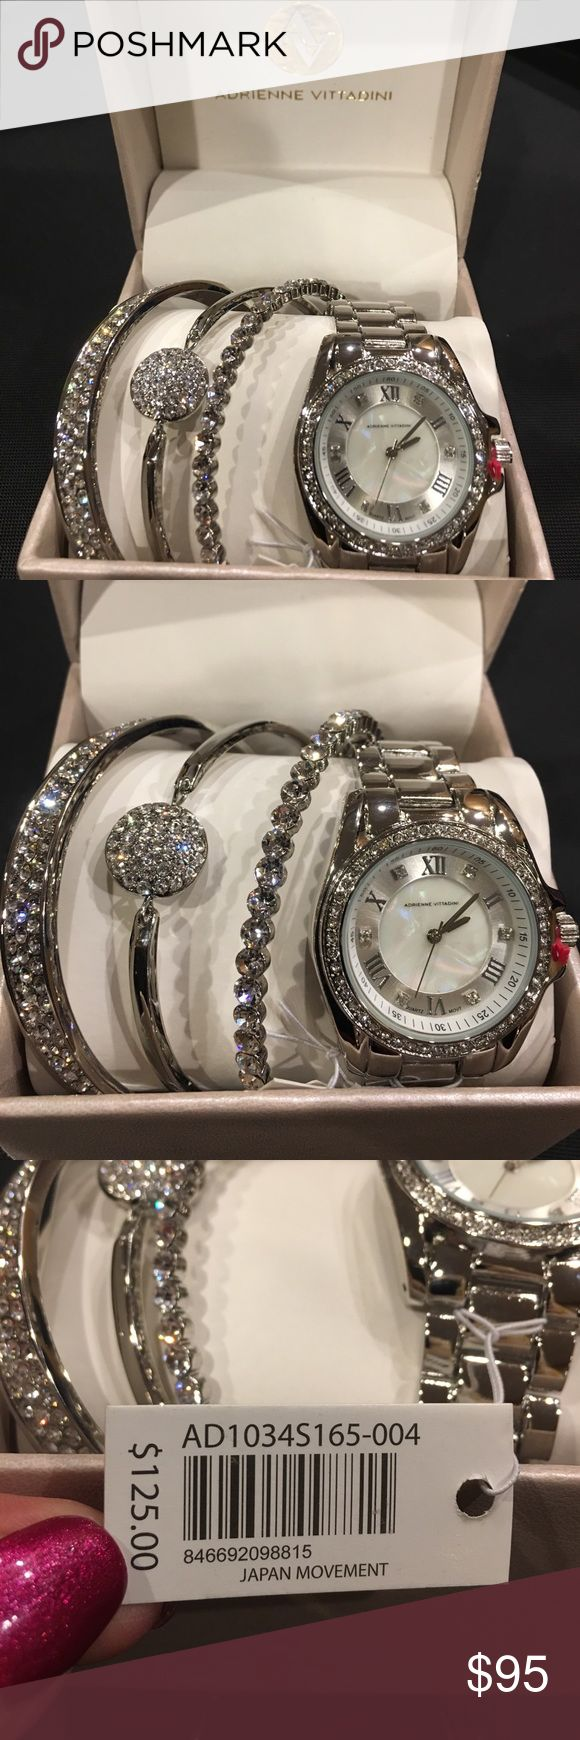 Adrienne Vittadini Watch and Bracelets Adrienne Vittadini Silver Watch with diamonds and 3 Bracelets. You can wear them all together or separately.  Brand new in box. Adrienne Vittadini Jewelry Bracelets